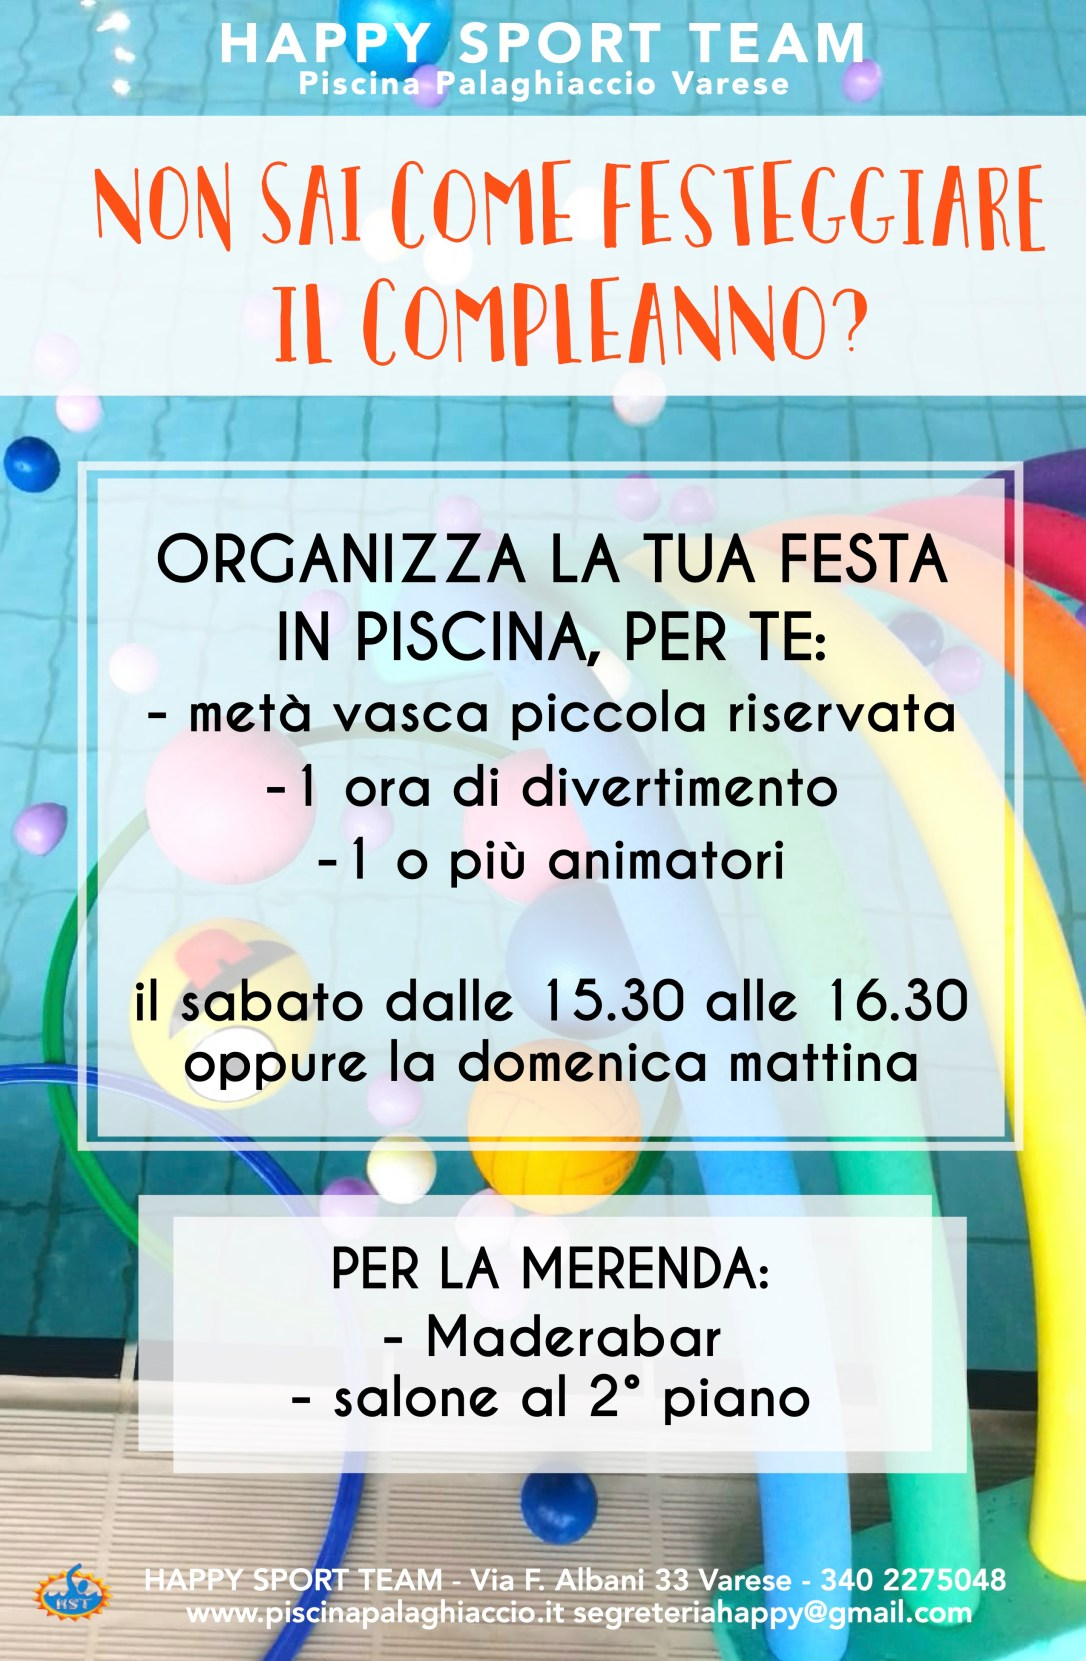 FESTE COMPLEANNO stories